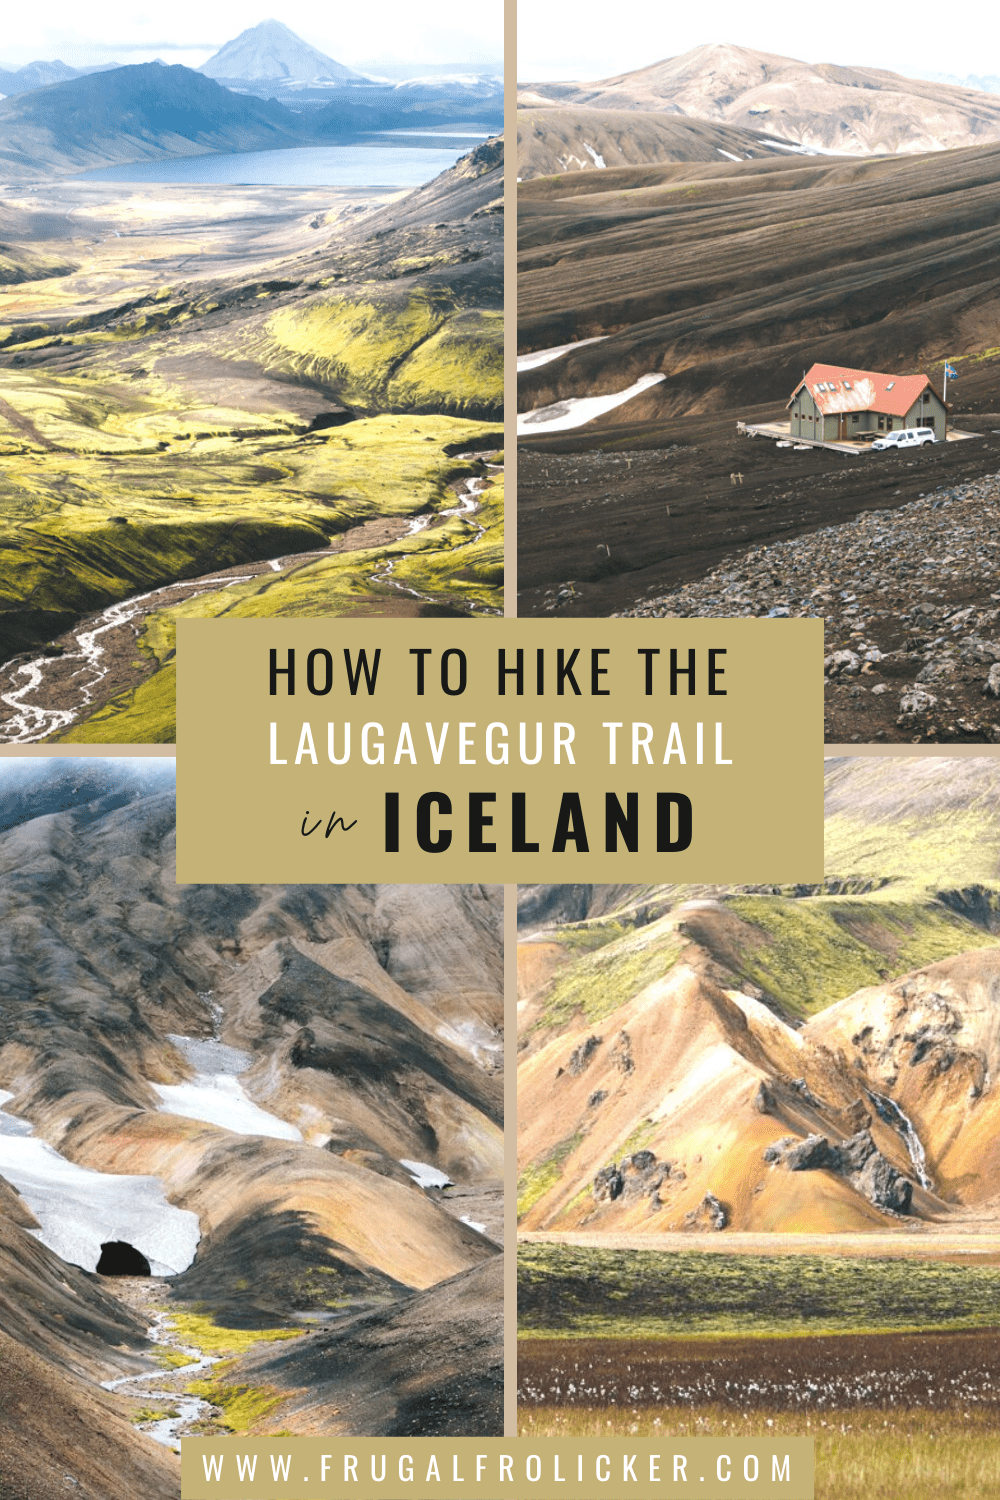 Hiking the Laugavegur Trail (Laugavegurinn) in Iceland